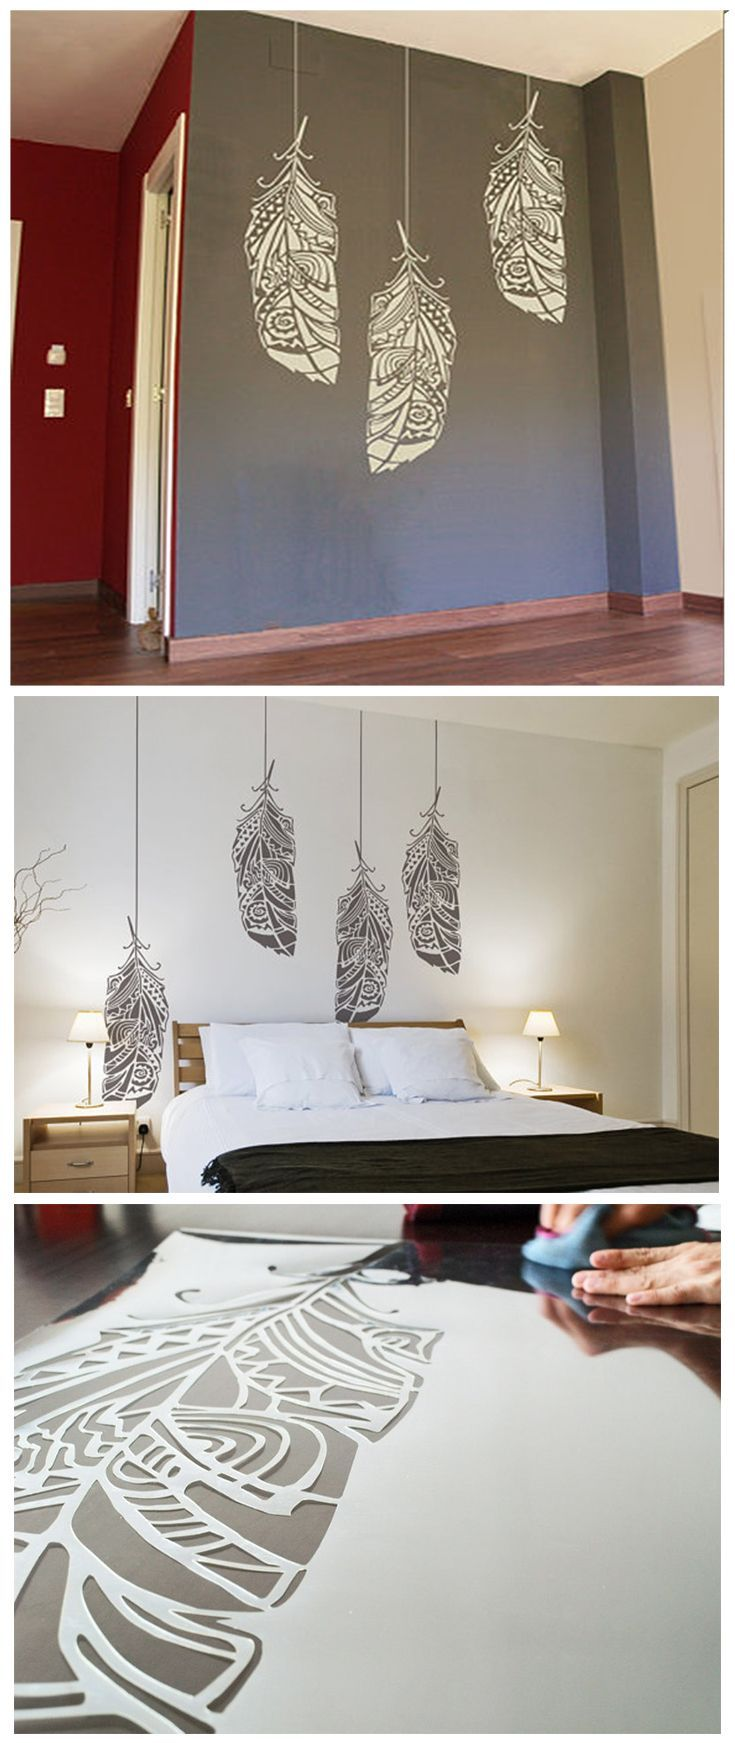 Best 25 Decorative wall paintings ideas on Pinterest Wall